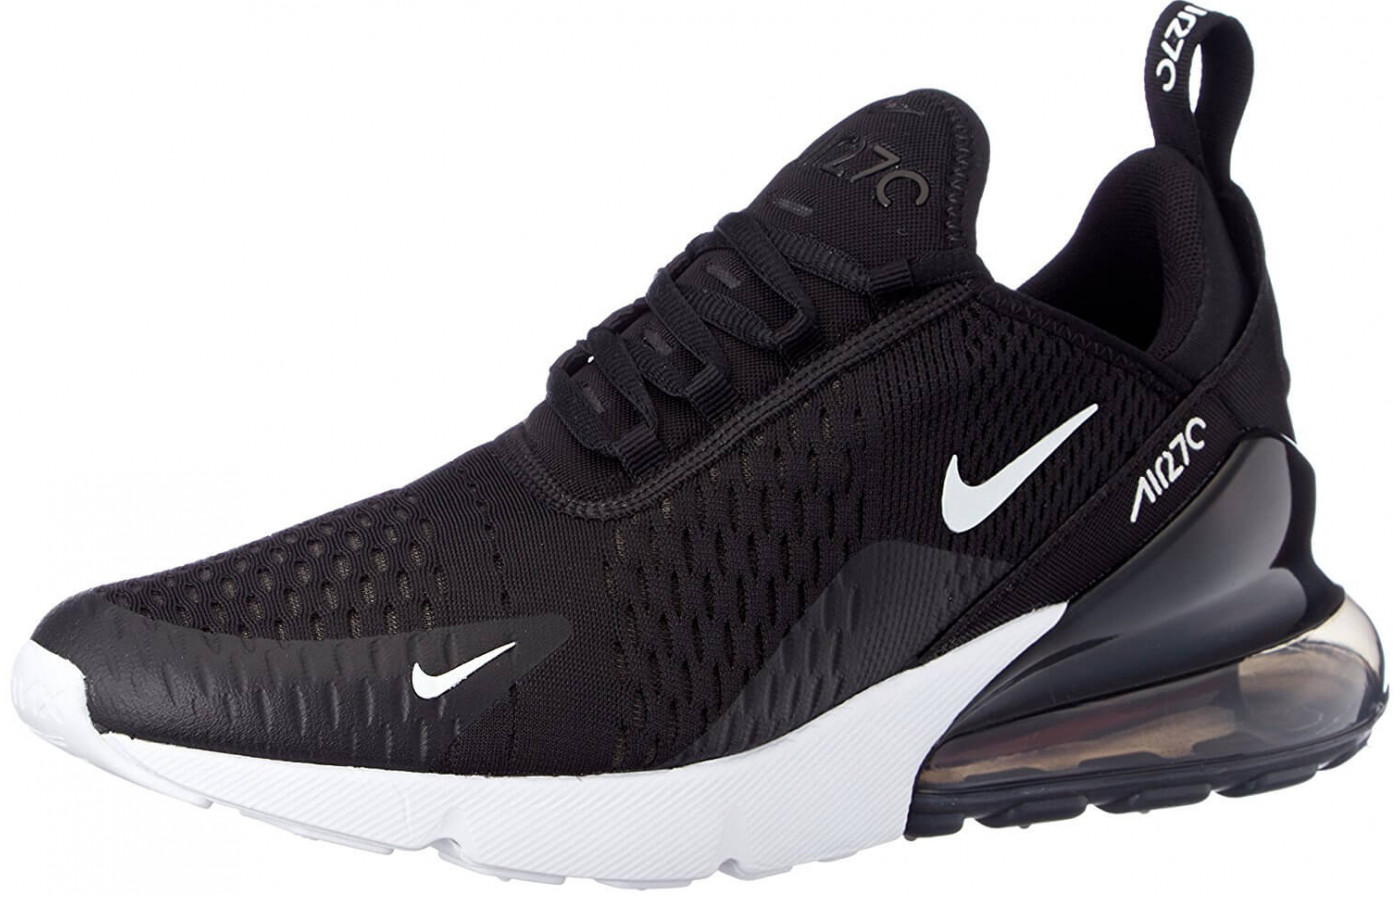 0bfee8da97cb7 Nike Air Max 270. Mesh upper and 270 degrees of Air ...